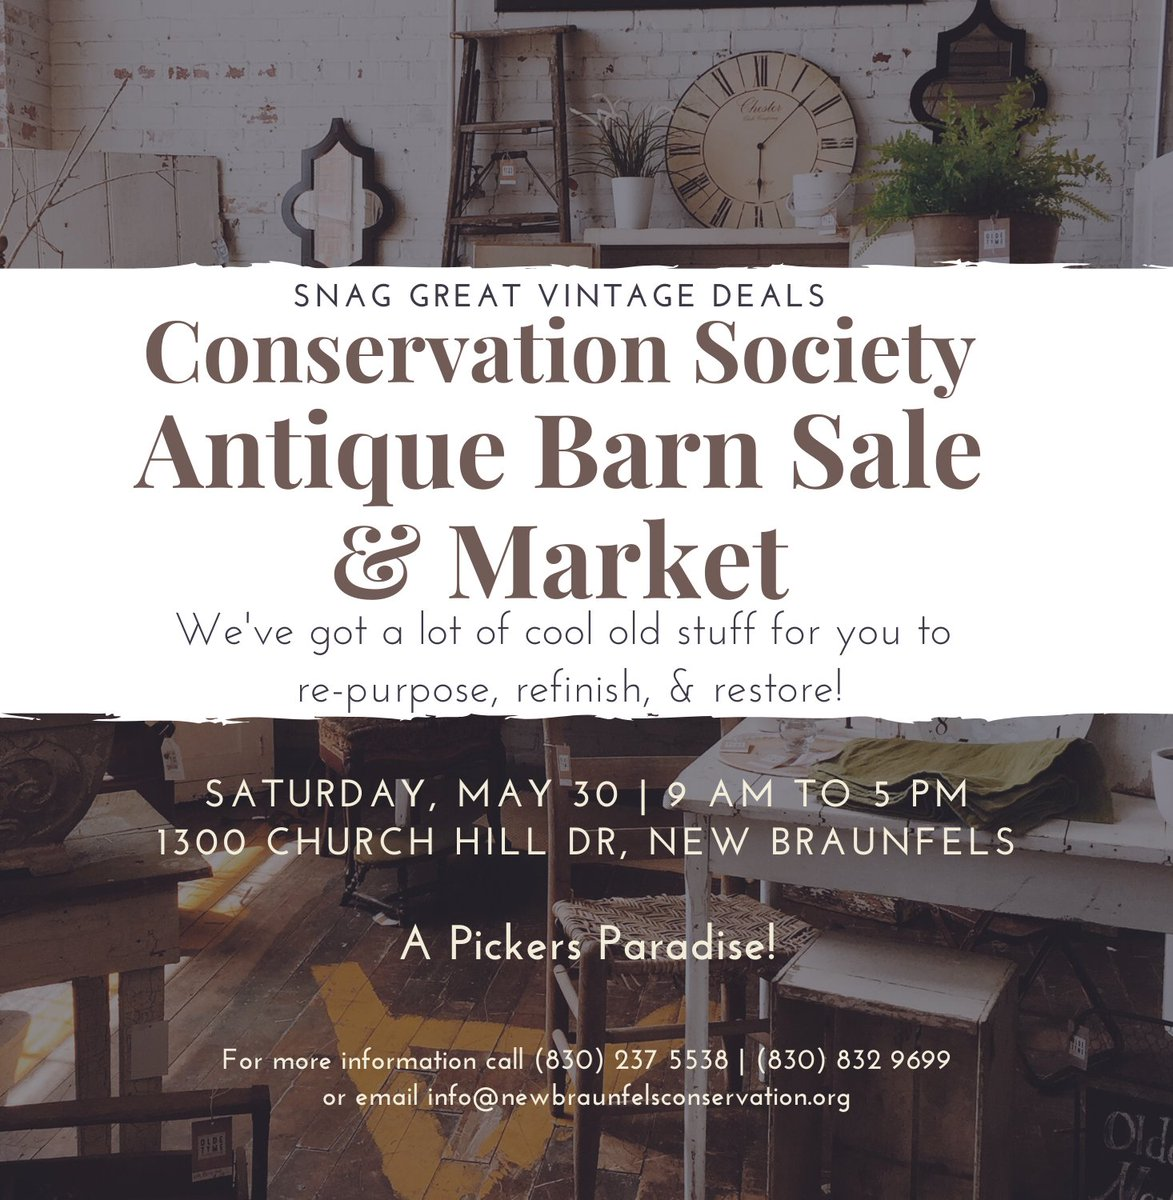 Did you mark your calendar yet? You won't want to miss out on this pickers paradise! #outdoormarket #openairmarket #antiques #antiquesale pic.twitter.com/xrwjffVArd